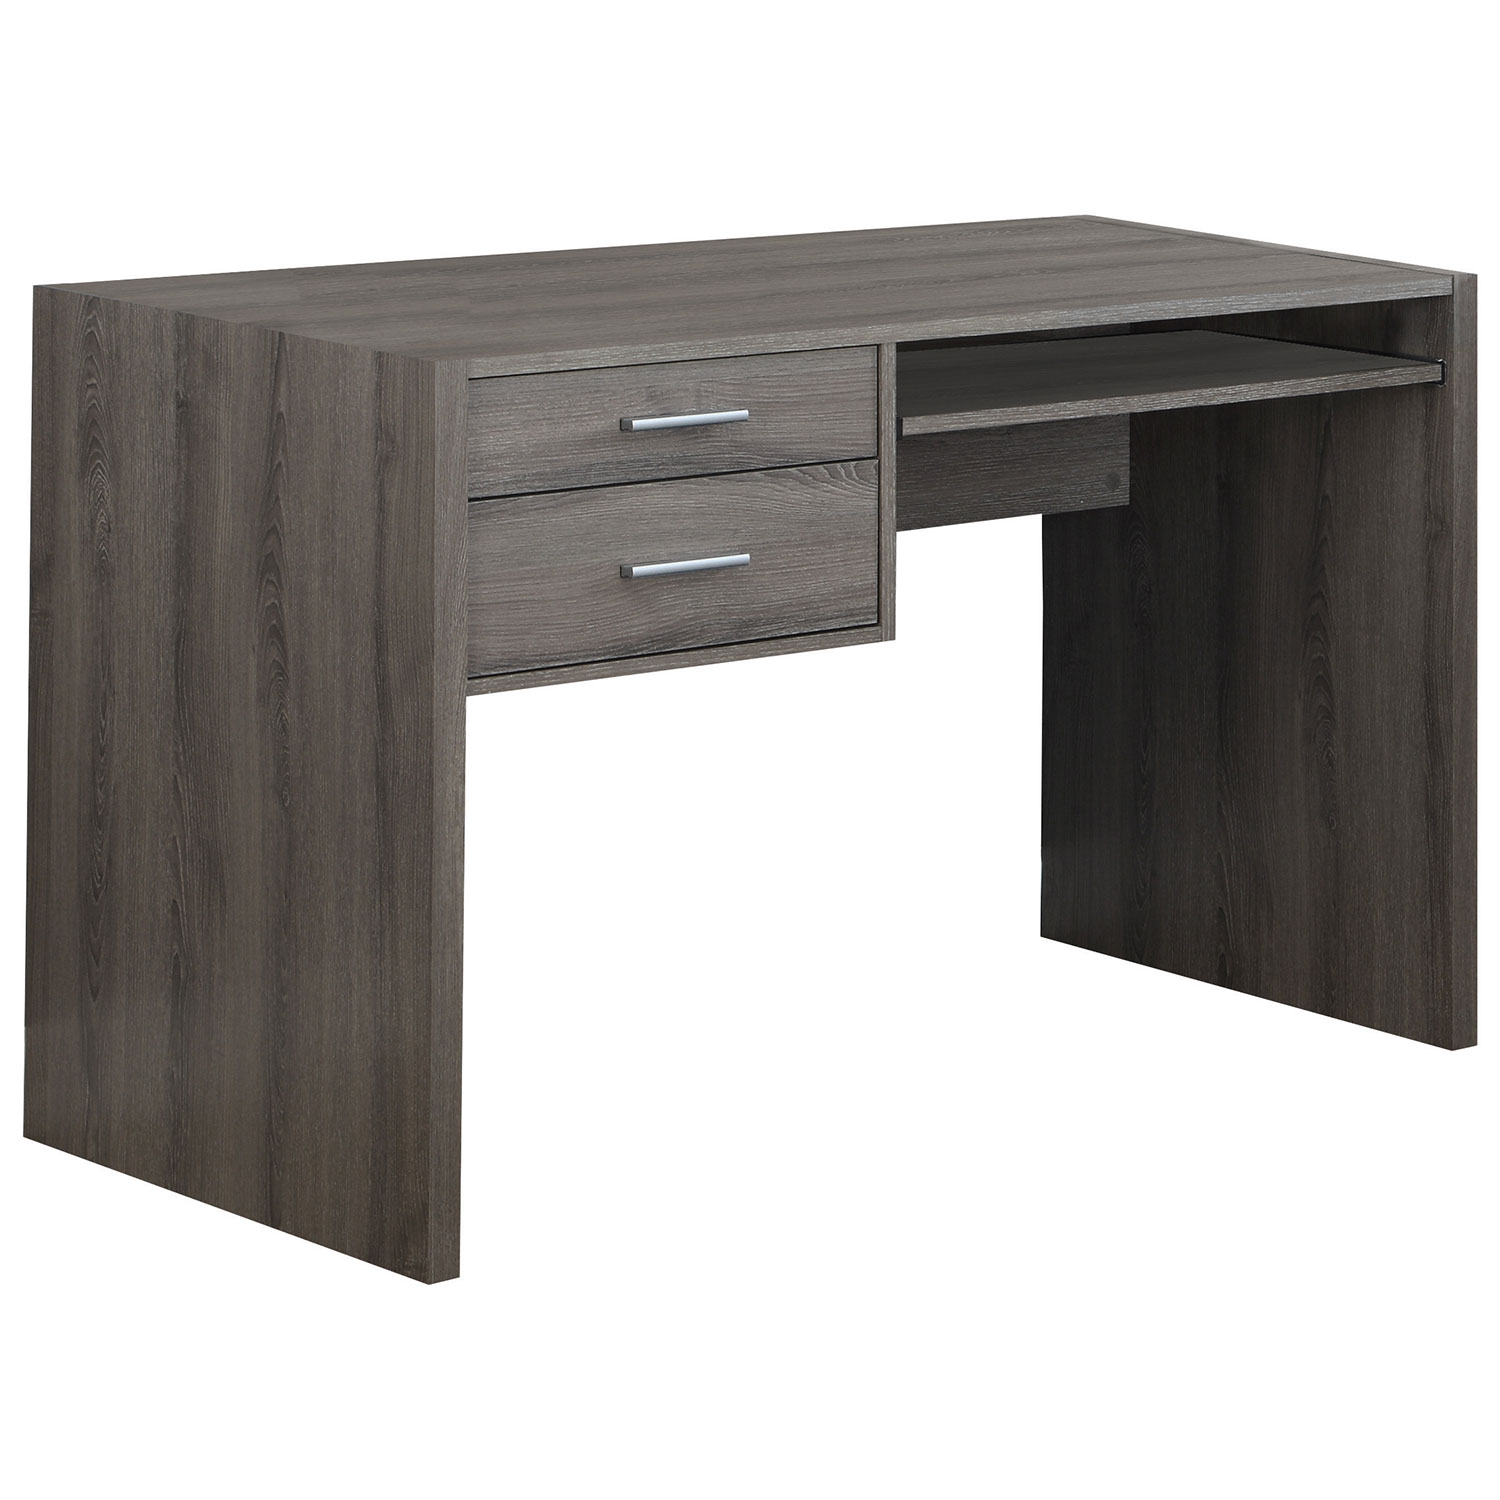 drawer computer desk  dark taupe  desks  workstations  best  - drawer computer desk  dark taupe  desks  workstations  best buy canada